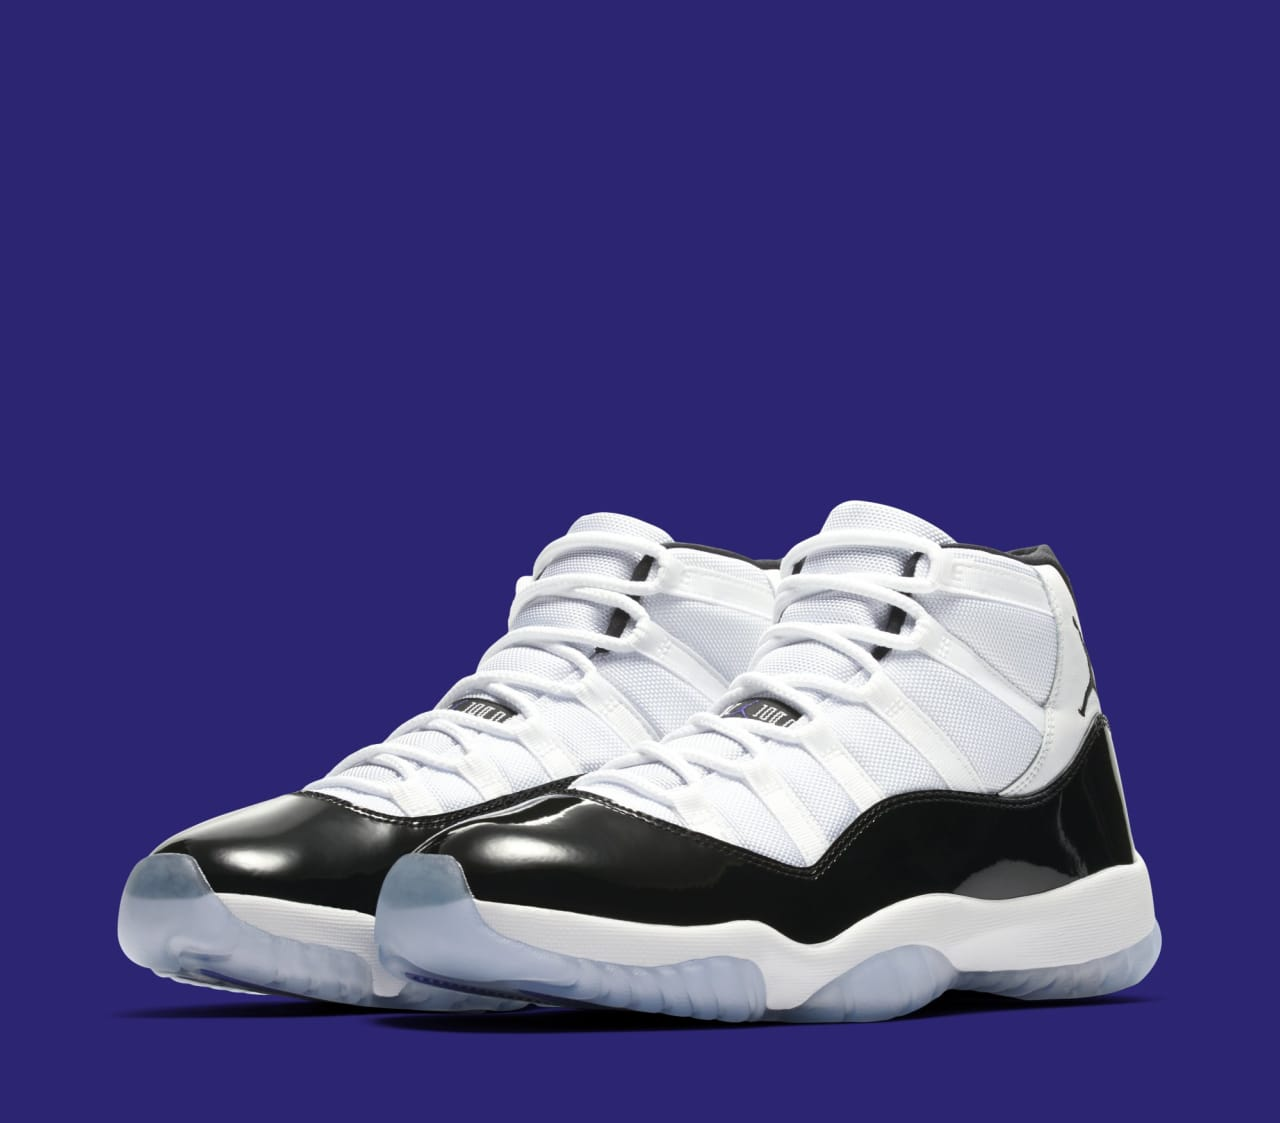 0ea43aab733 Concord' Air Jordan 11 Returning In 2018 378037-100 | Sole Collector